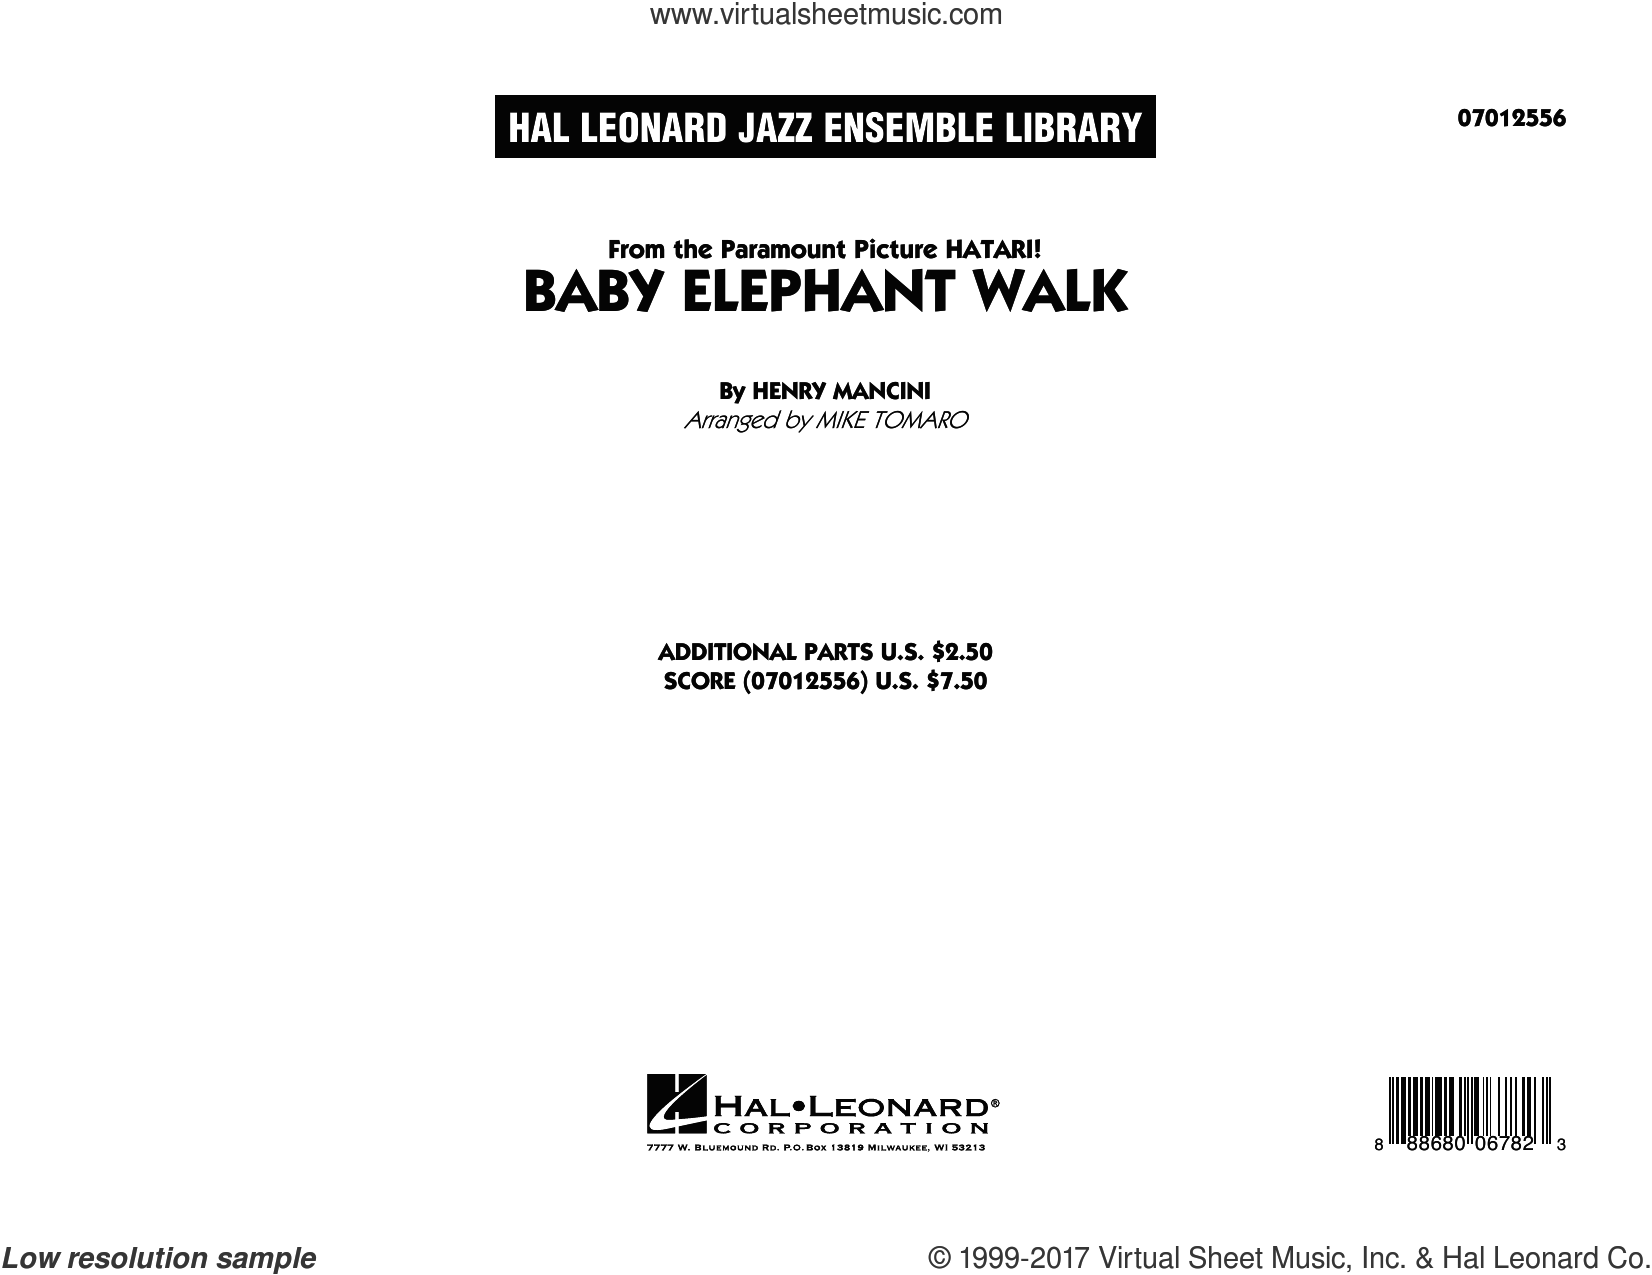 Baby Elephant Walk (COMPLETE) sheet music for jazz band by Henry Mancini, Hal David, Lawrence Welk, Mike Tomaro and Miniature Men, intermediate skill level